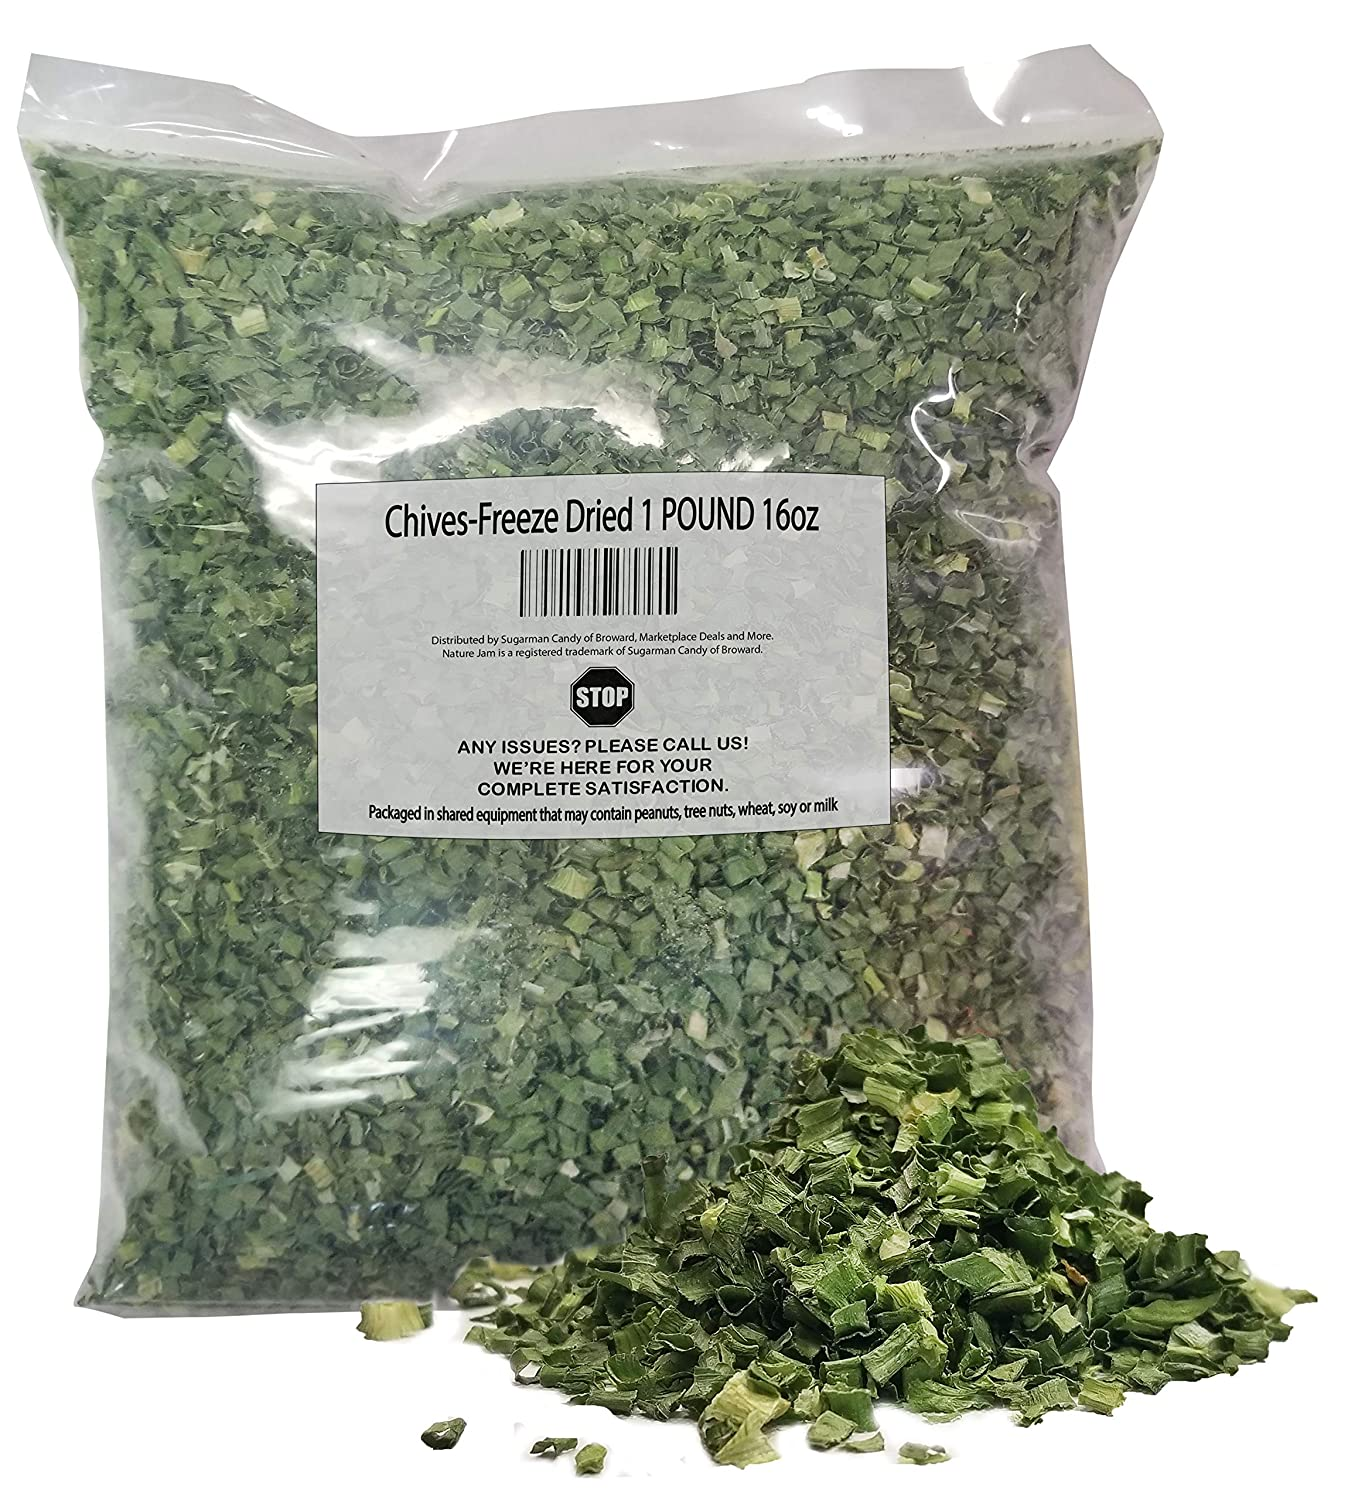 Chives-Freeze Dried Trust 1 POUND-Heat Sealed Phoenix Mall OZ Freshness 16 for